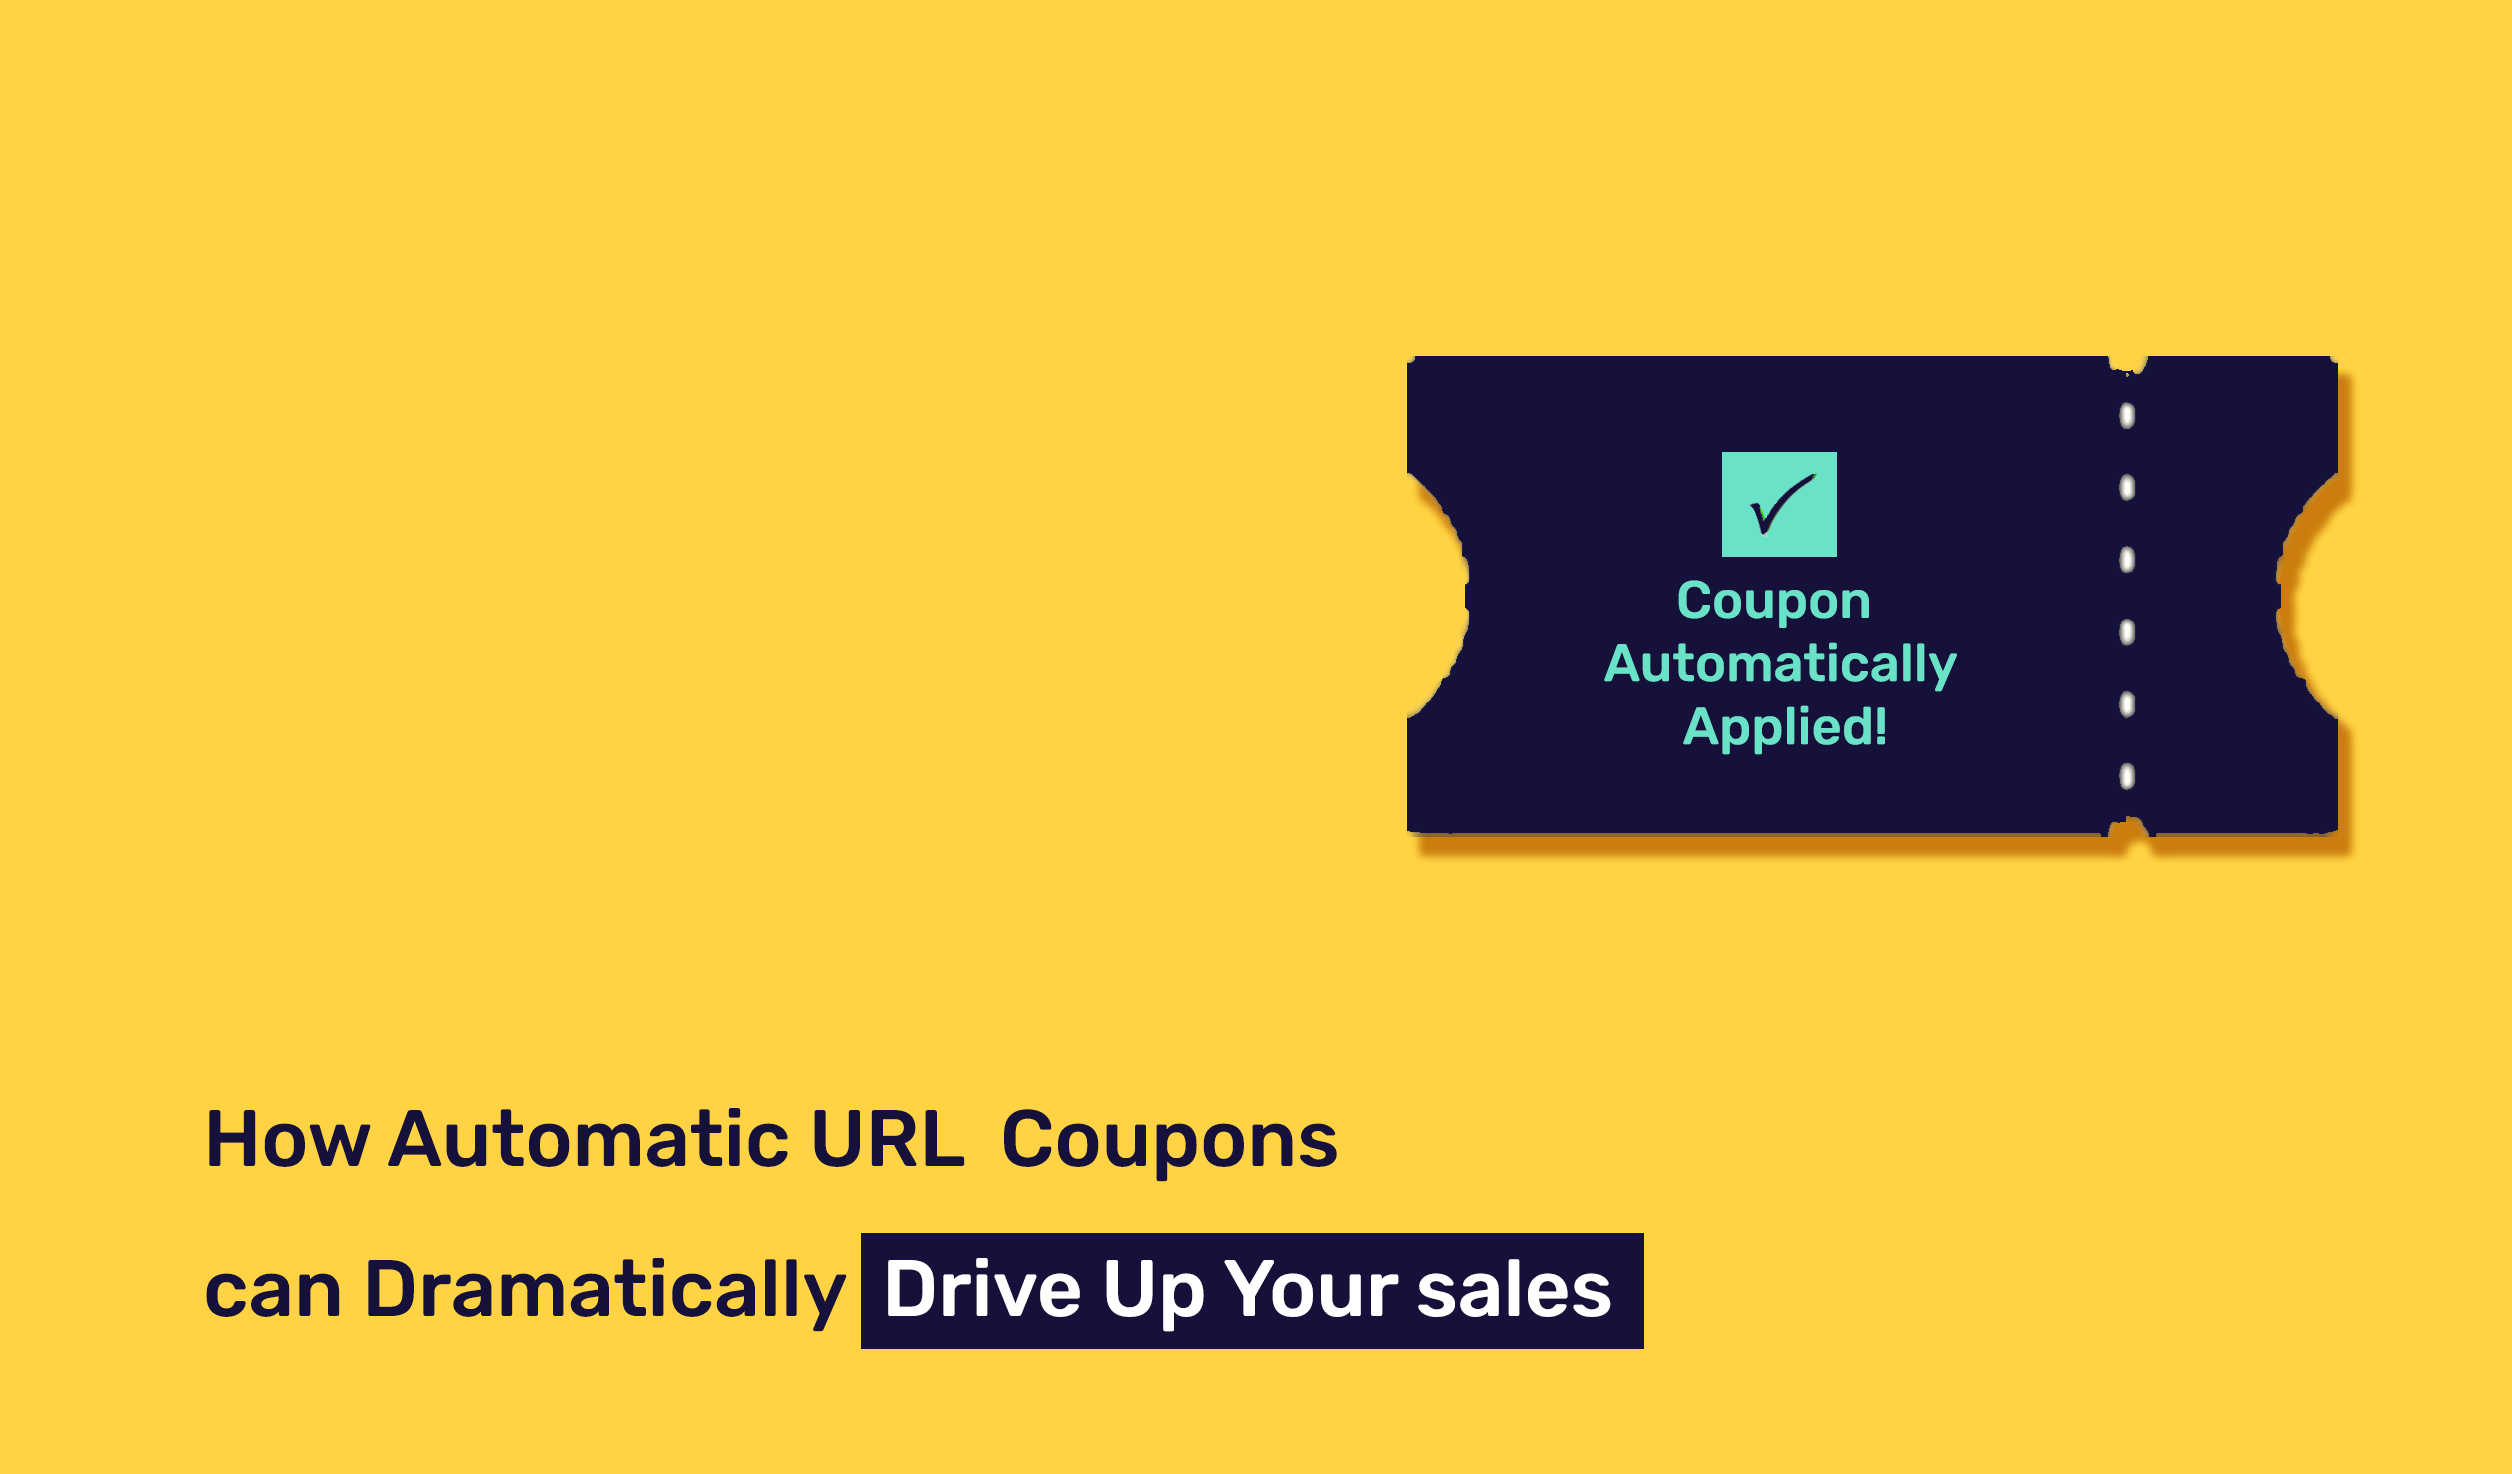 What are Automatic URL Coupons and why are they better than Coupon Codes?